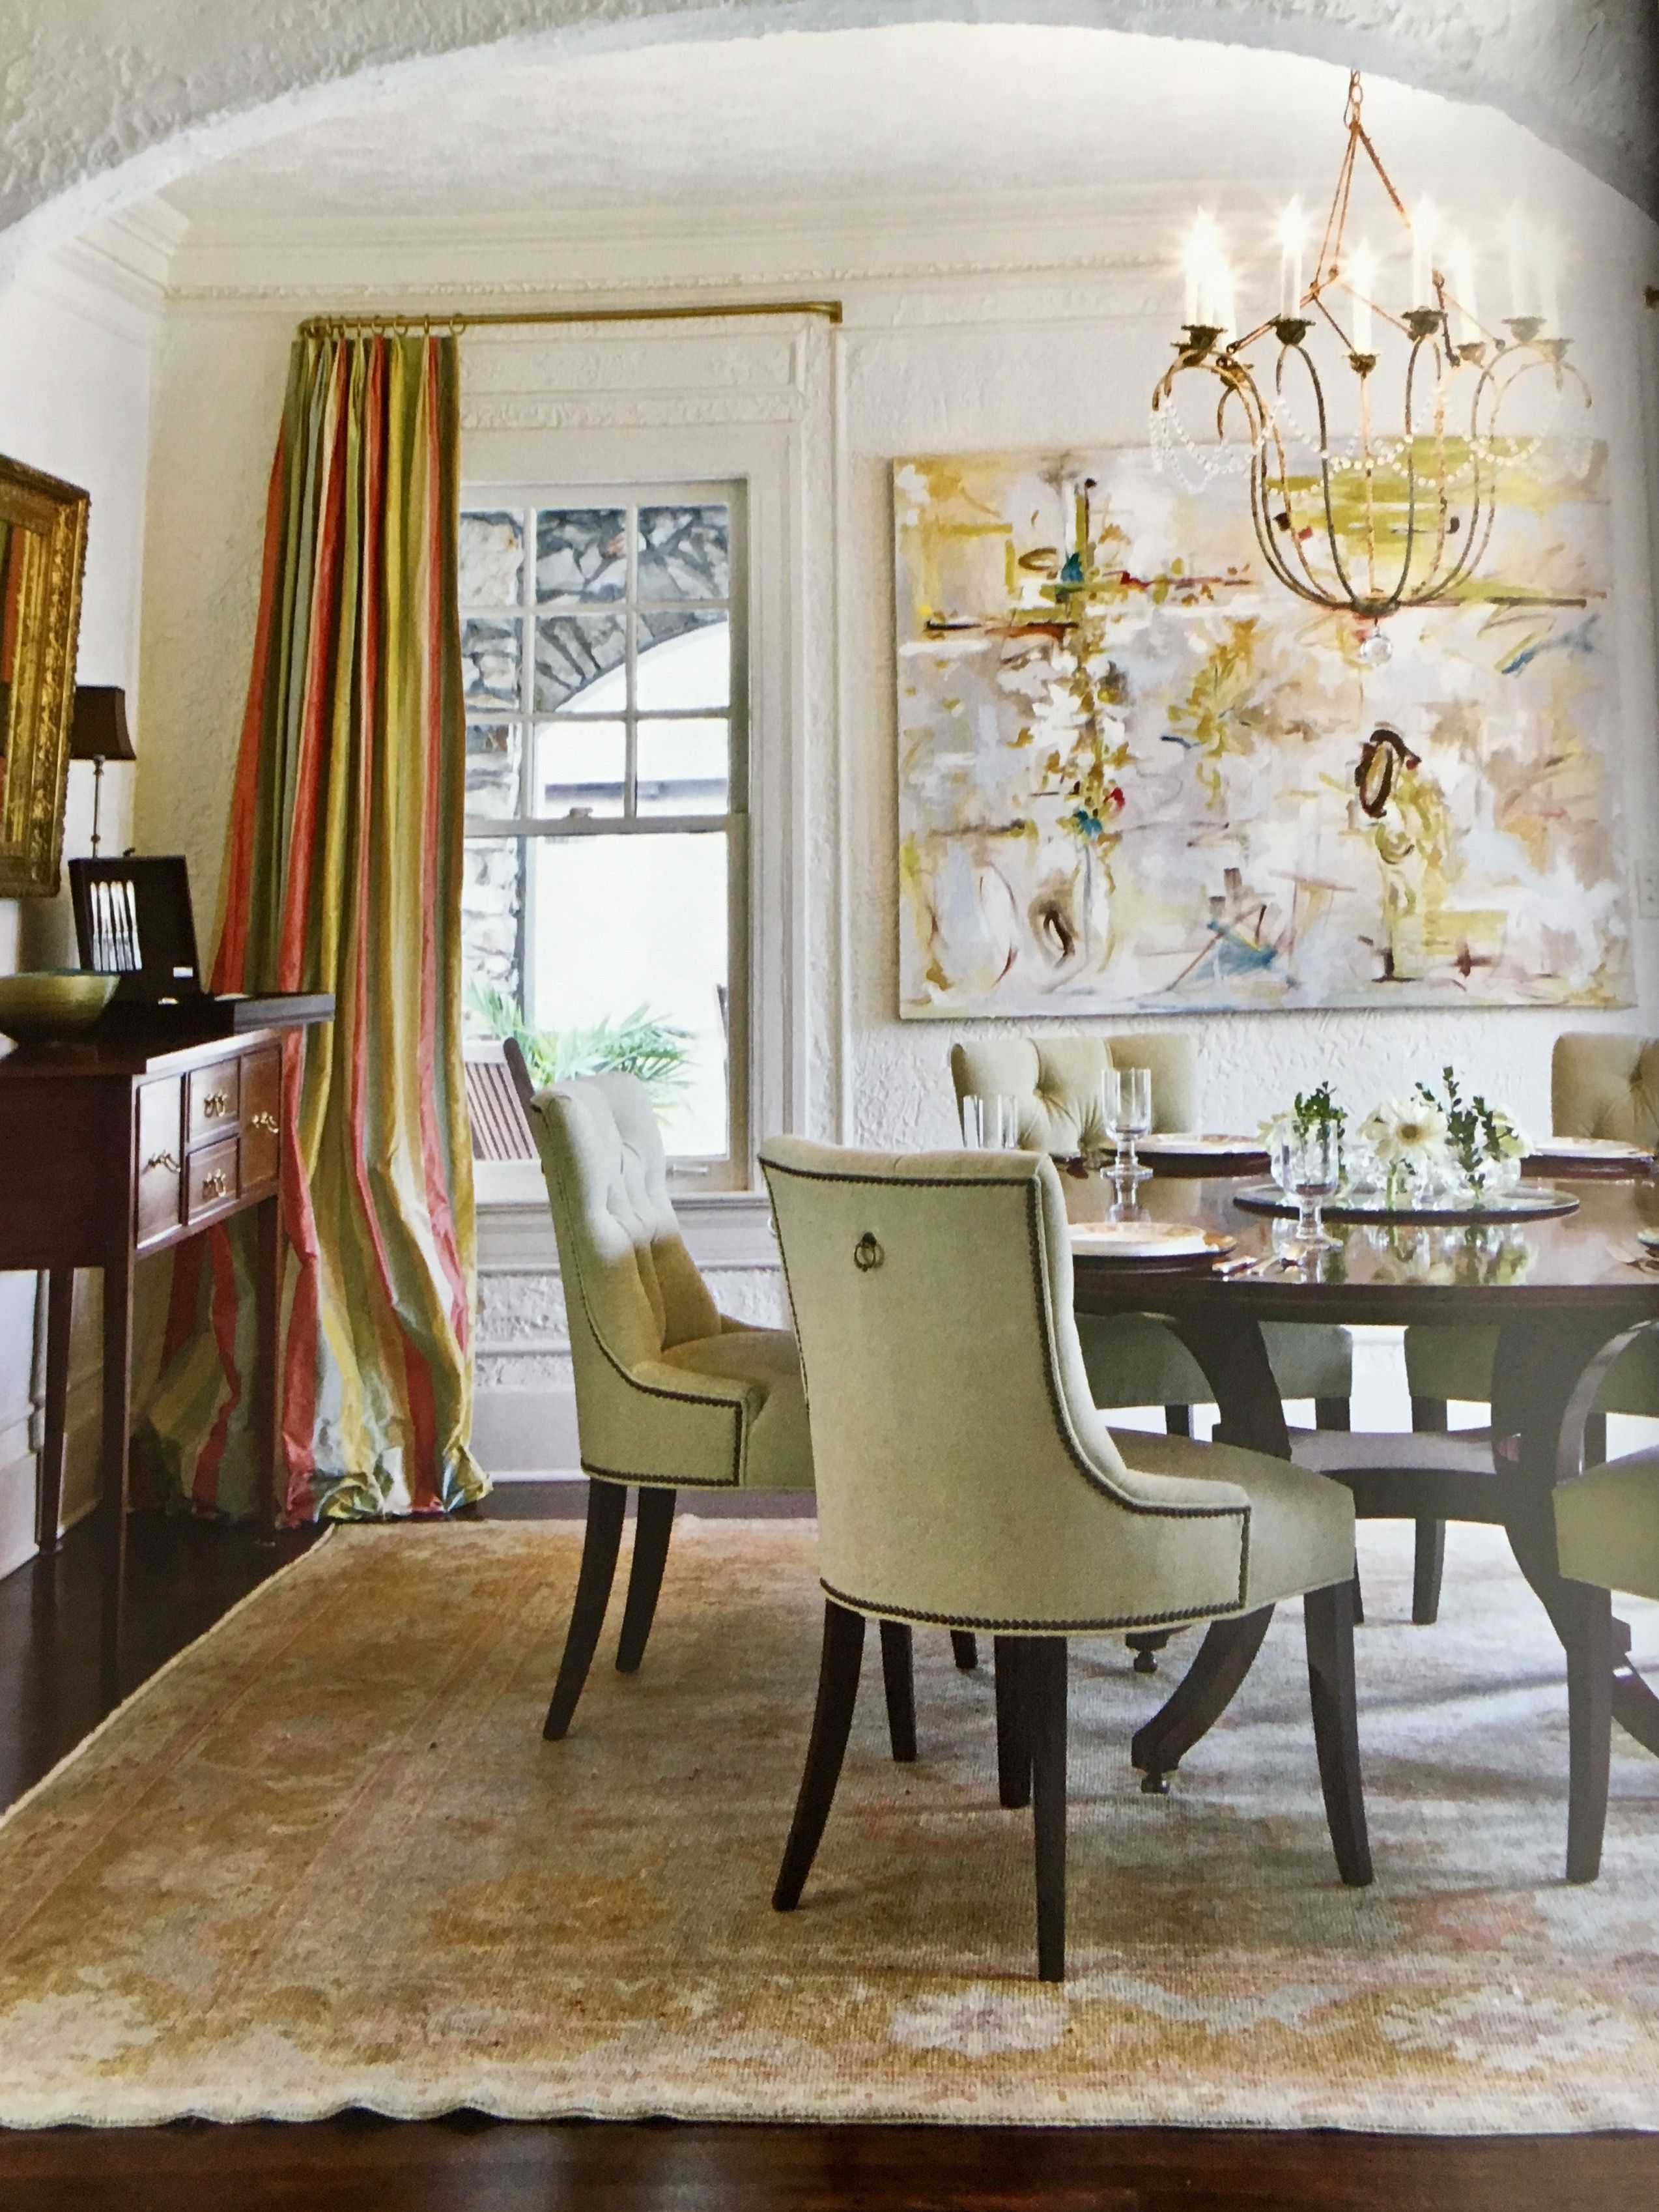 Pin by Sharon Knoll on Interior Design   Southern cottage ...